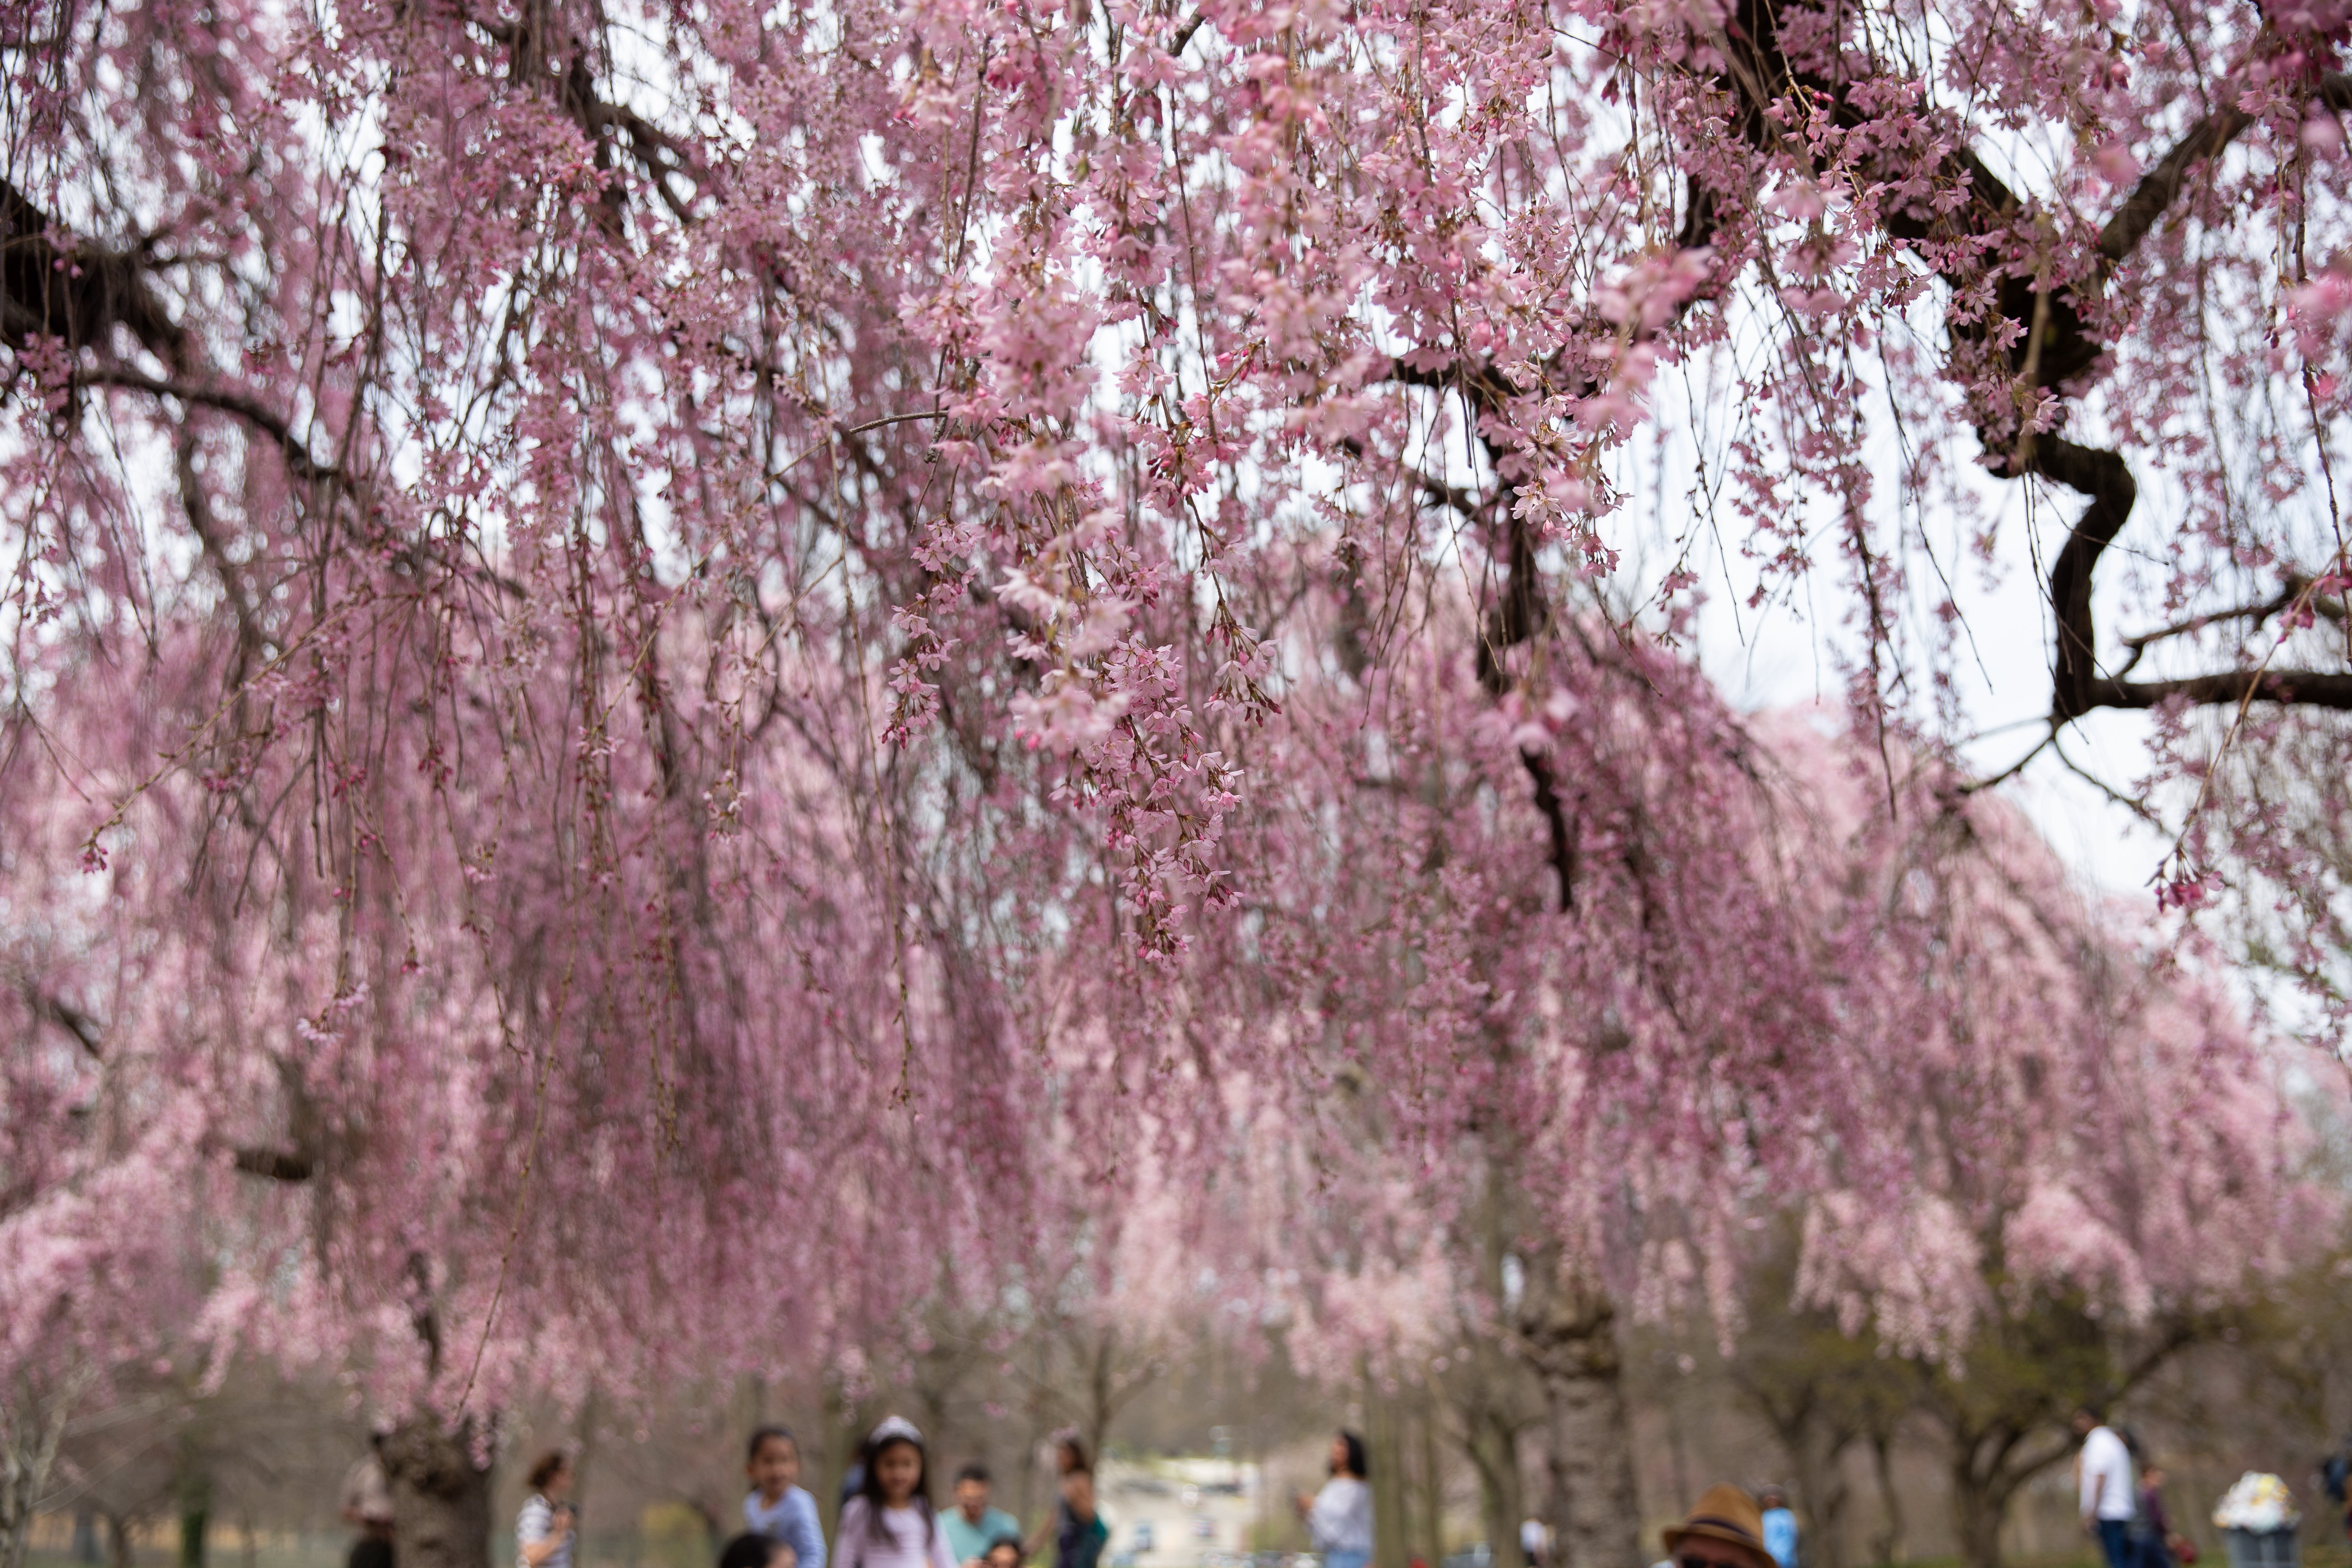 Up-close photo of a pink cherry blossom trees at Fairmount Park in Philadelphia, PA.